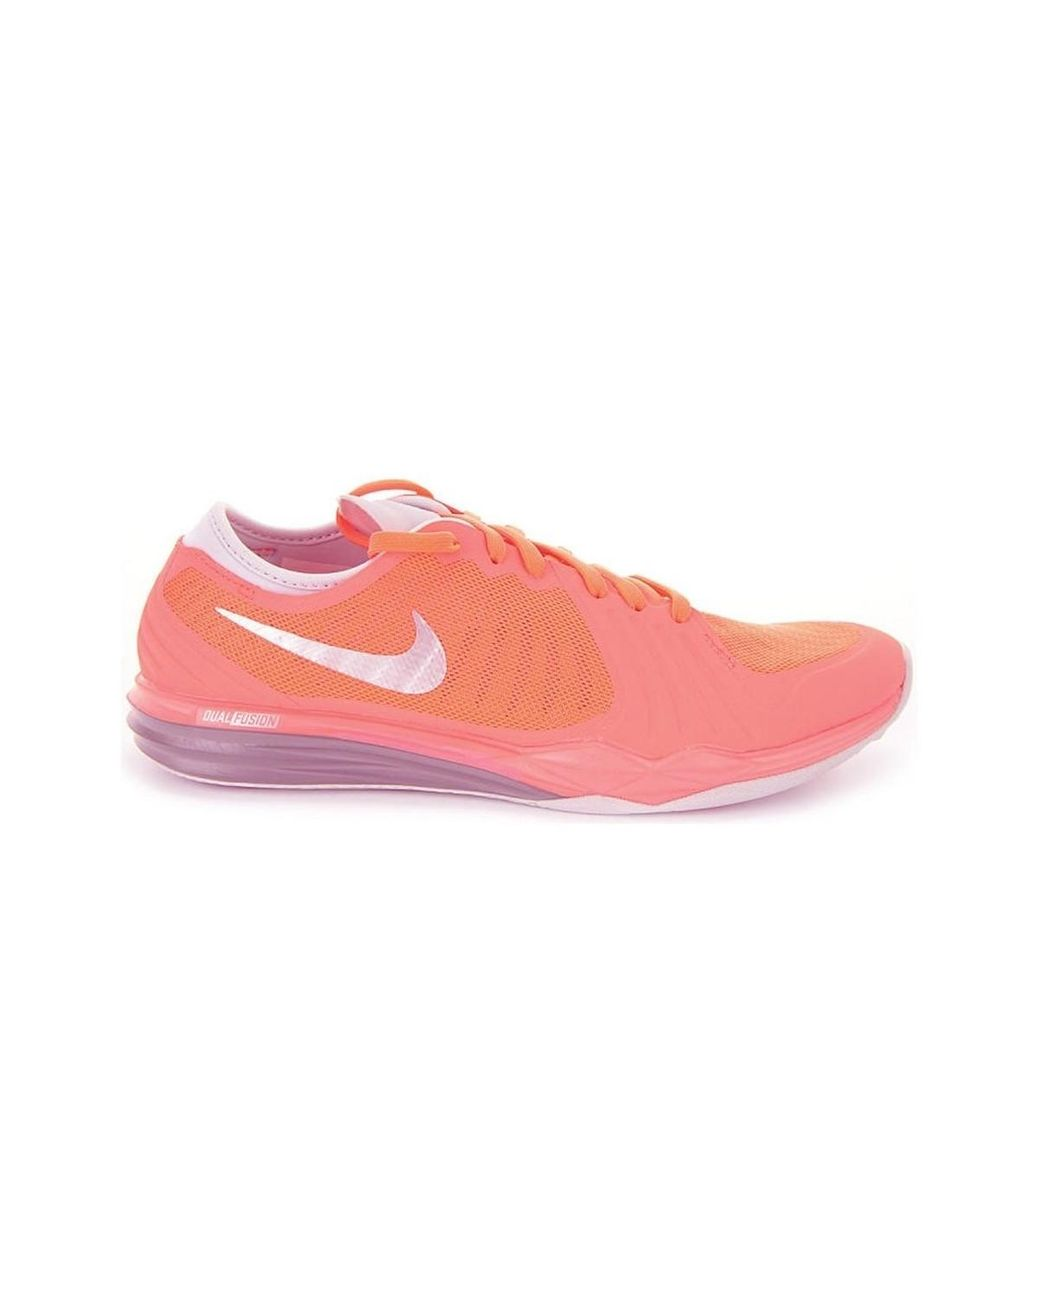 wholesale online casual shoes great prices Nike W Dual Fusion Tr 4 Gymnastics Shoes in Orange - Save 30% - Lyst